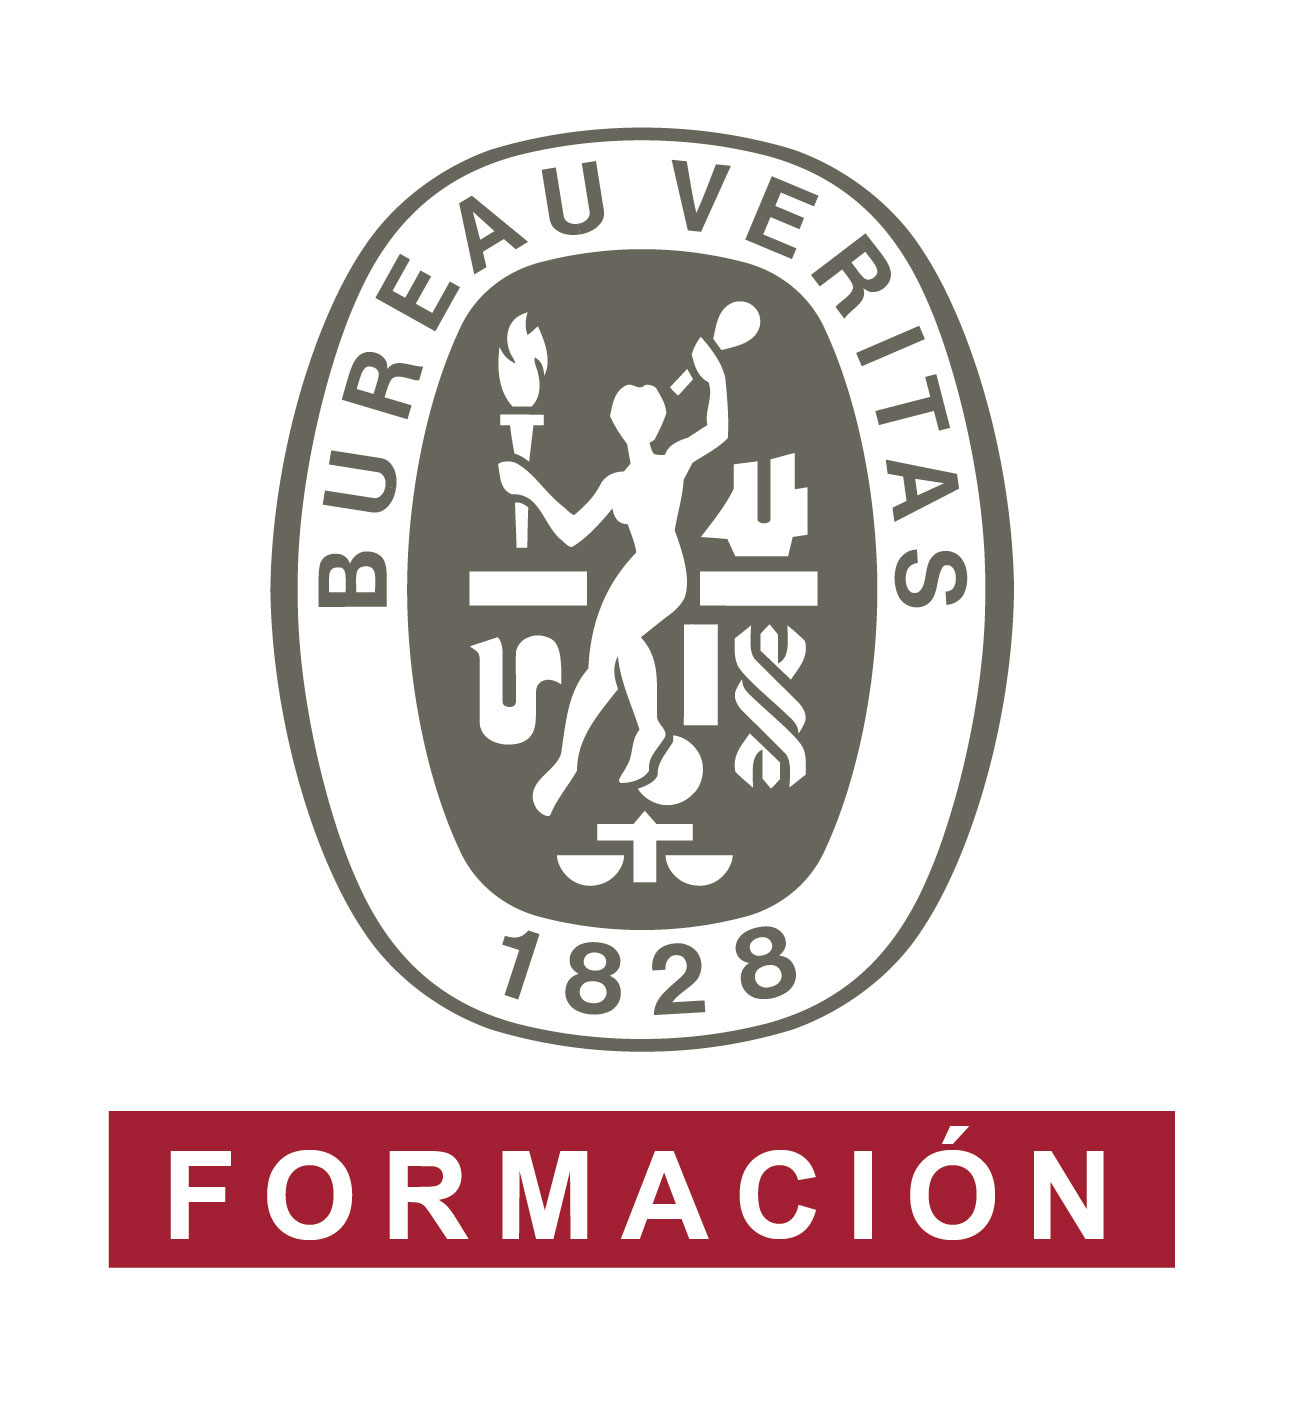 Bureau Veritas Formaci�n (Centro Universitario y Business School)